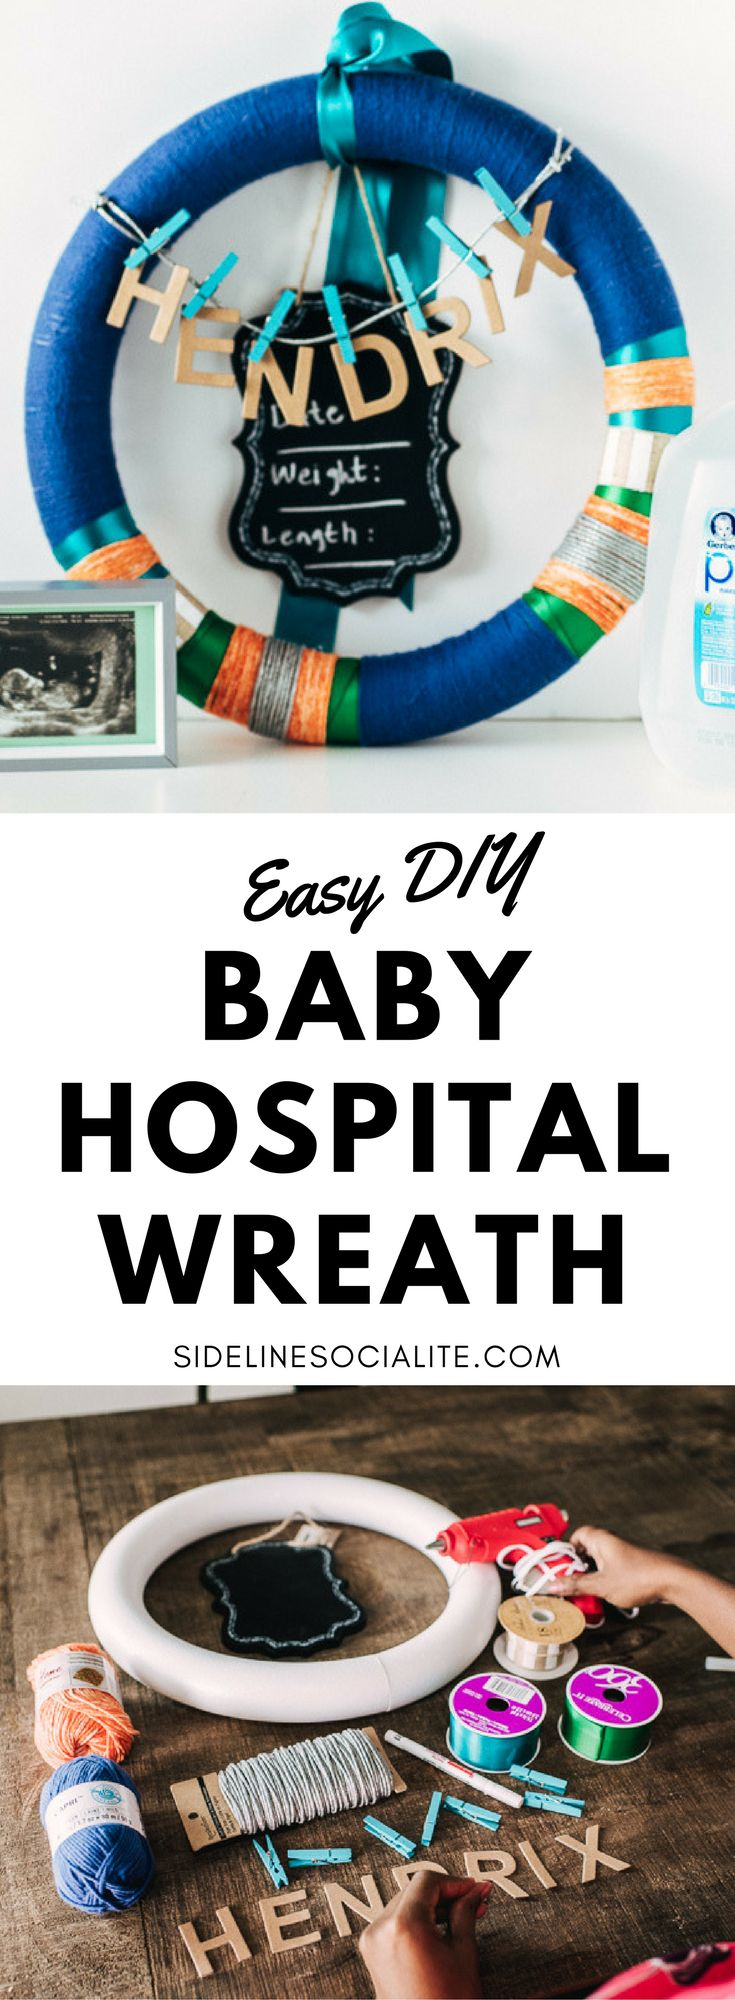 Super easy DIY baby hospital door wreath perfect to decorate the hospital door announcing baby's arrival. Great for baby boy and baby girl. #gerberpurewater #ad @walmart